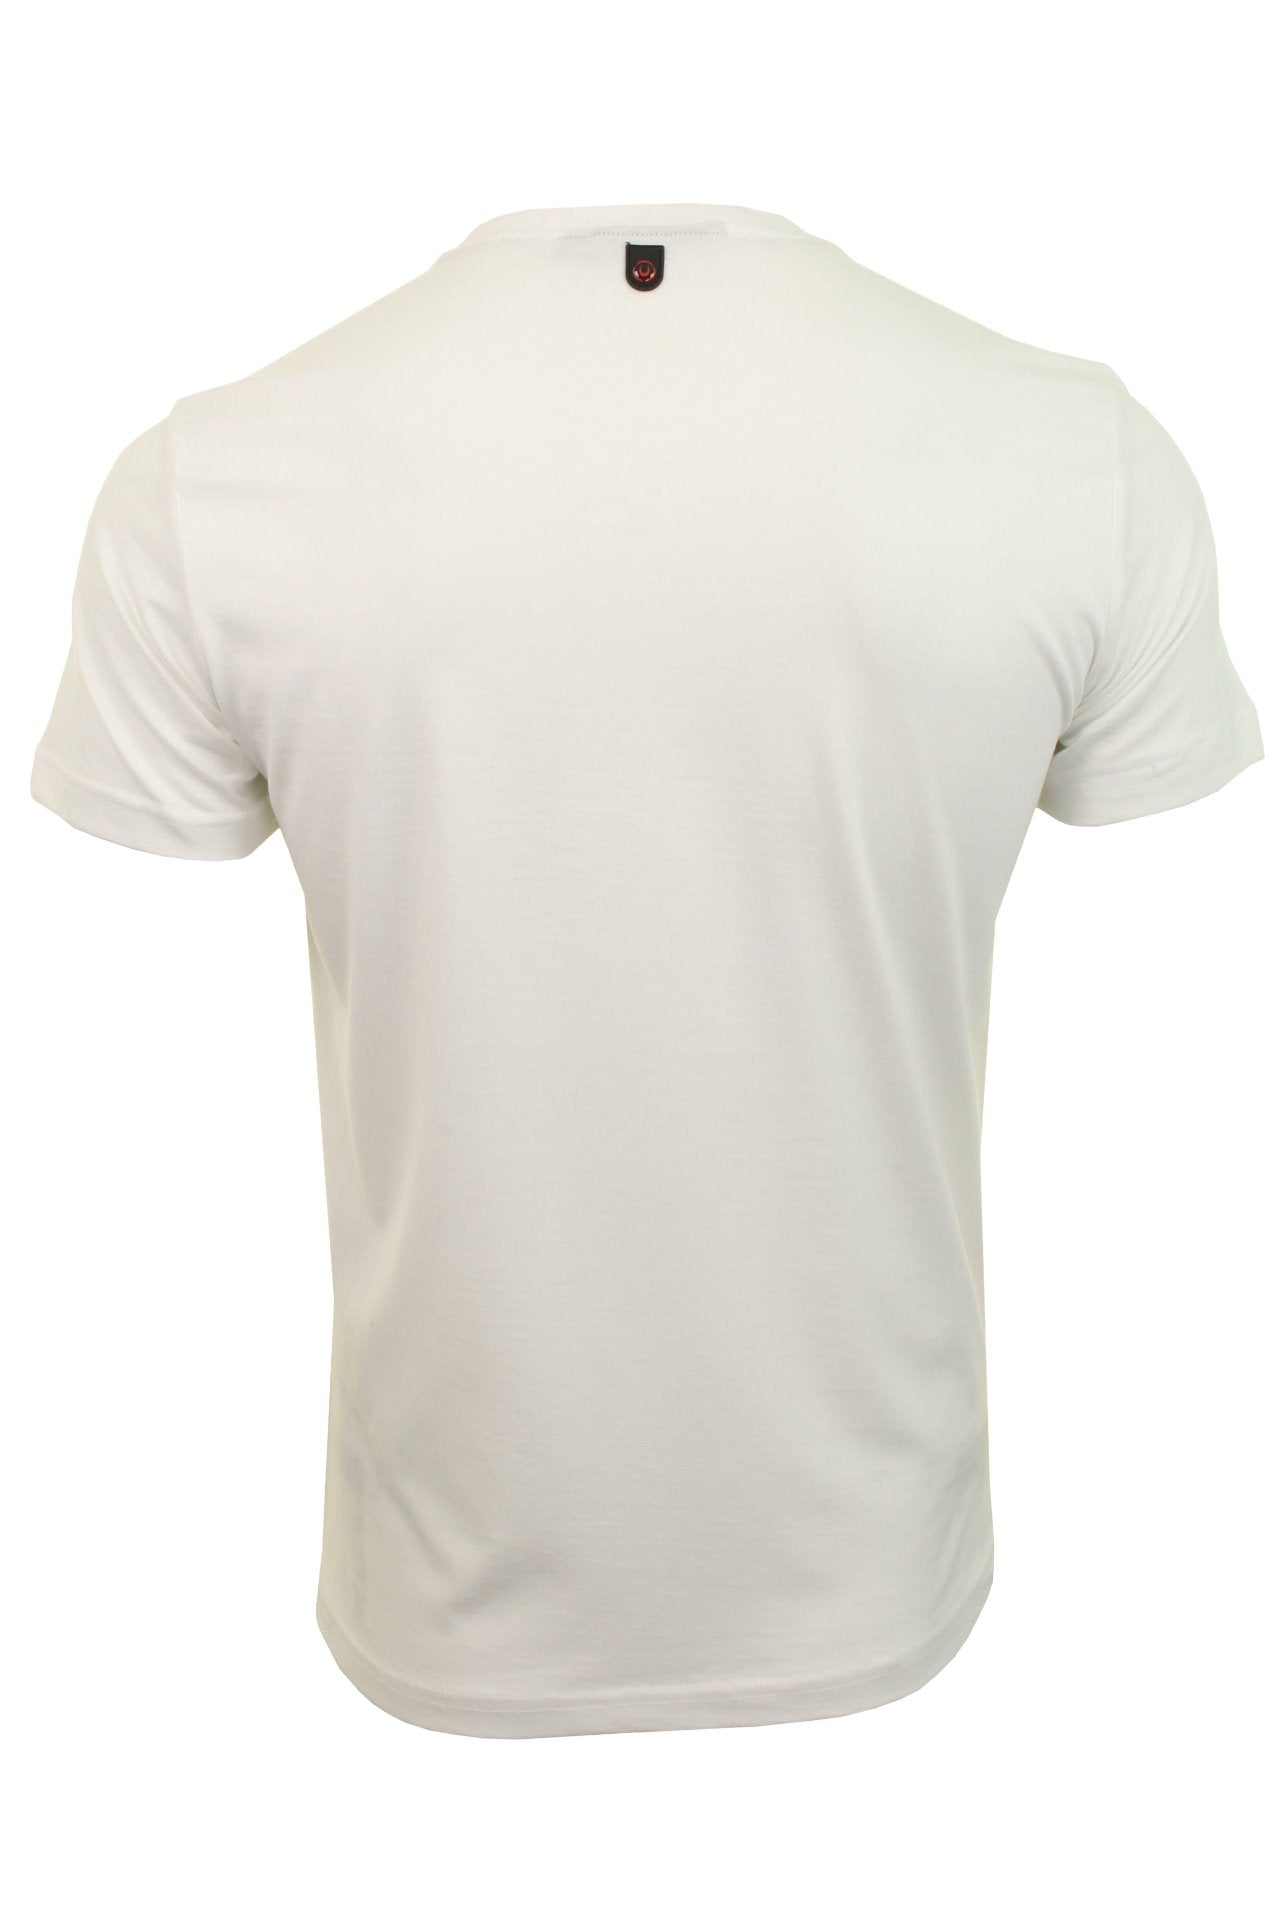 Duck and Cover Mens 'Midas' T-Shirt-2